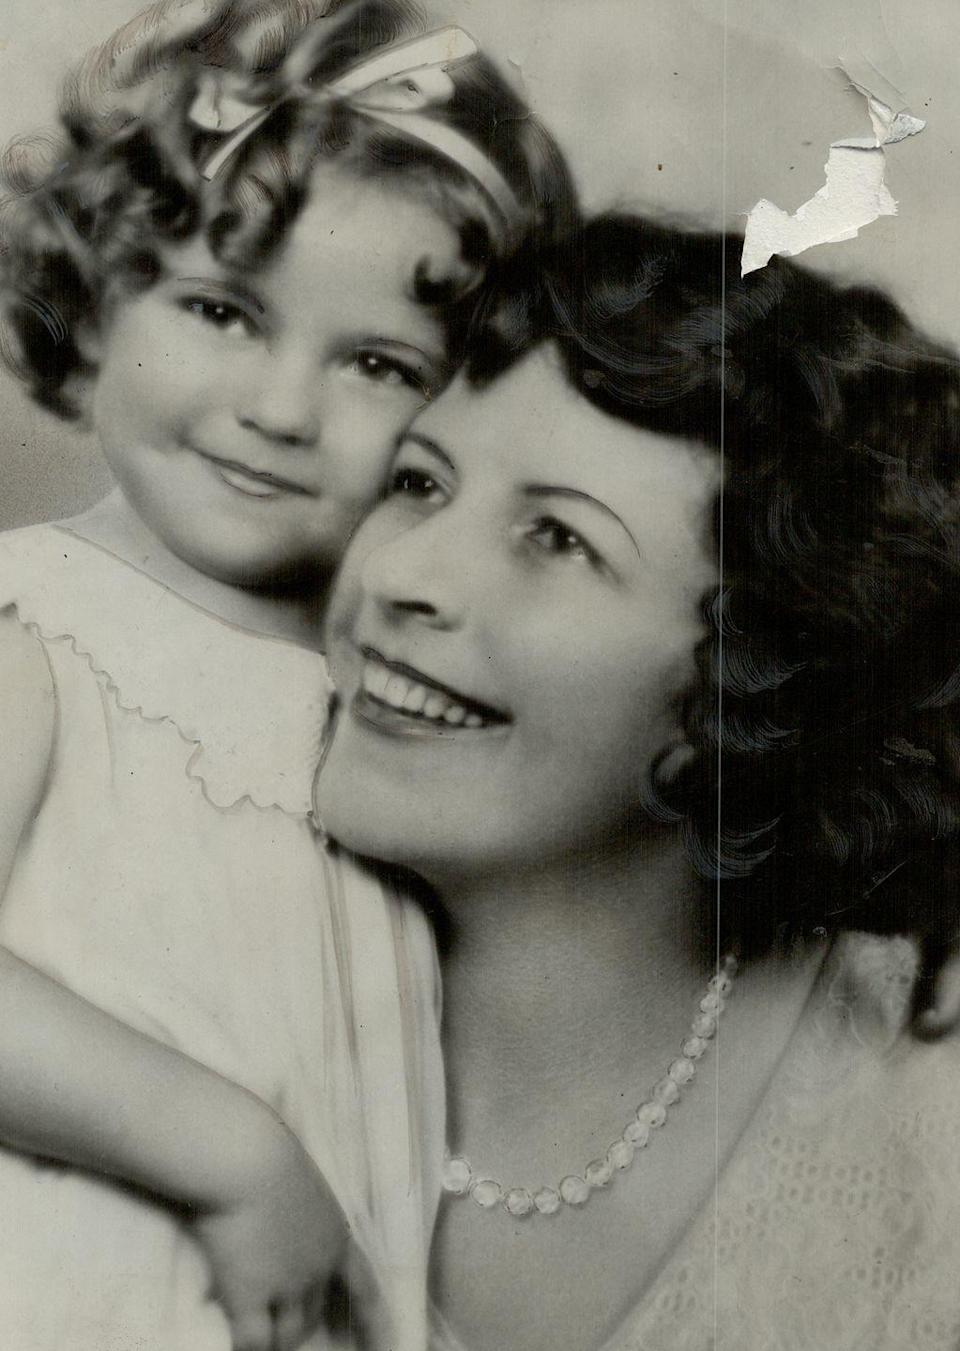 """<p>Shirley Temple was <a href=""""https://www.biography.com/actor/shirley-temple"""" rel=""""nofollow noopener"""" target=""""_blank"""" data-ylk=""""slk:born in 1928"""" class=""""link rapid-noclick-resp"""">born in 1928</a> in Santa Monica, California. The youngest of three children, her mother was a housewife, while her father worked as a banker. </p><p><strong>RELATED: </strong><a href=""""https://www.goodhousekeeping.com/life/g24274828/popular-child-star-year-you-were-born/"""" rel=""""nofollow noopener"""" target=""""_blank"""" data-ylk=""""slk:The Most Popular Child Star the Year You Were Born"""" class=""""link rapid-noclick-resp"""">The Most Popular Child Star the Year You Were Born</a></p>"""